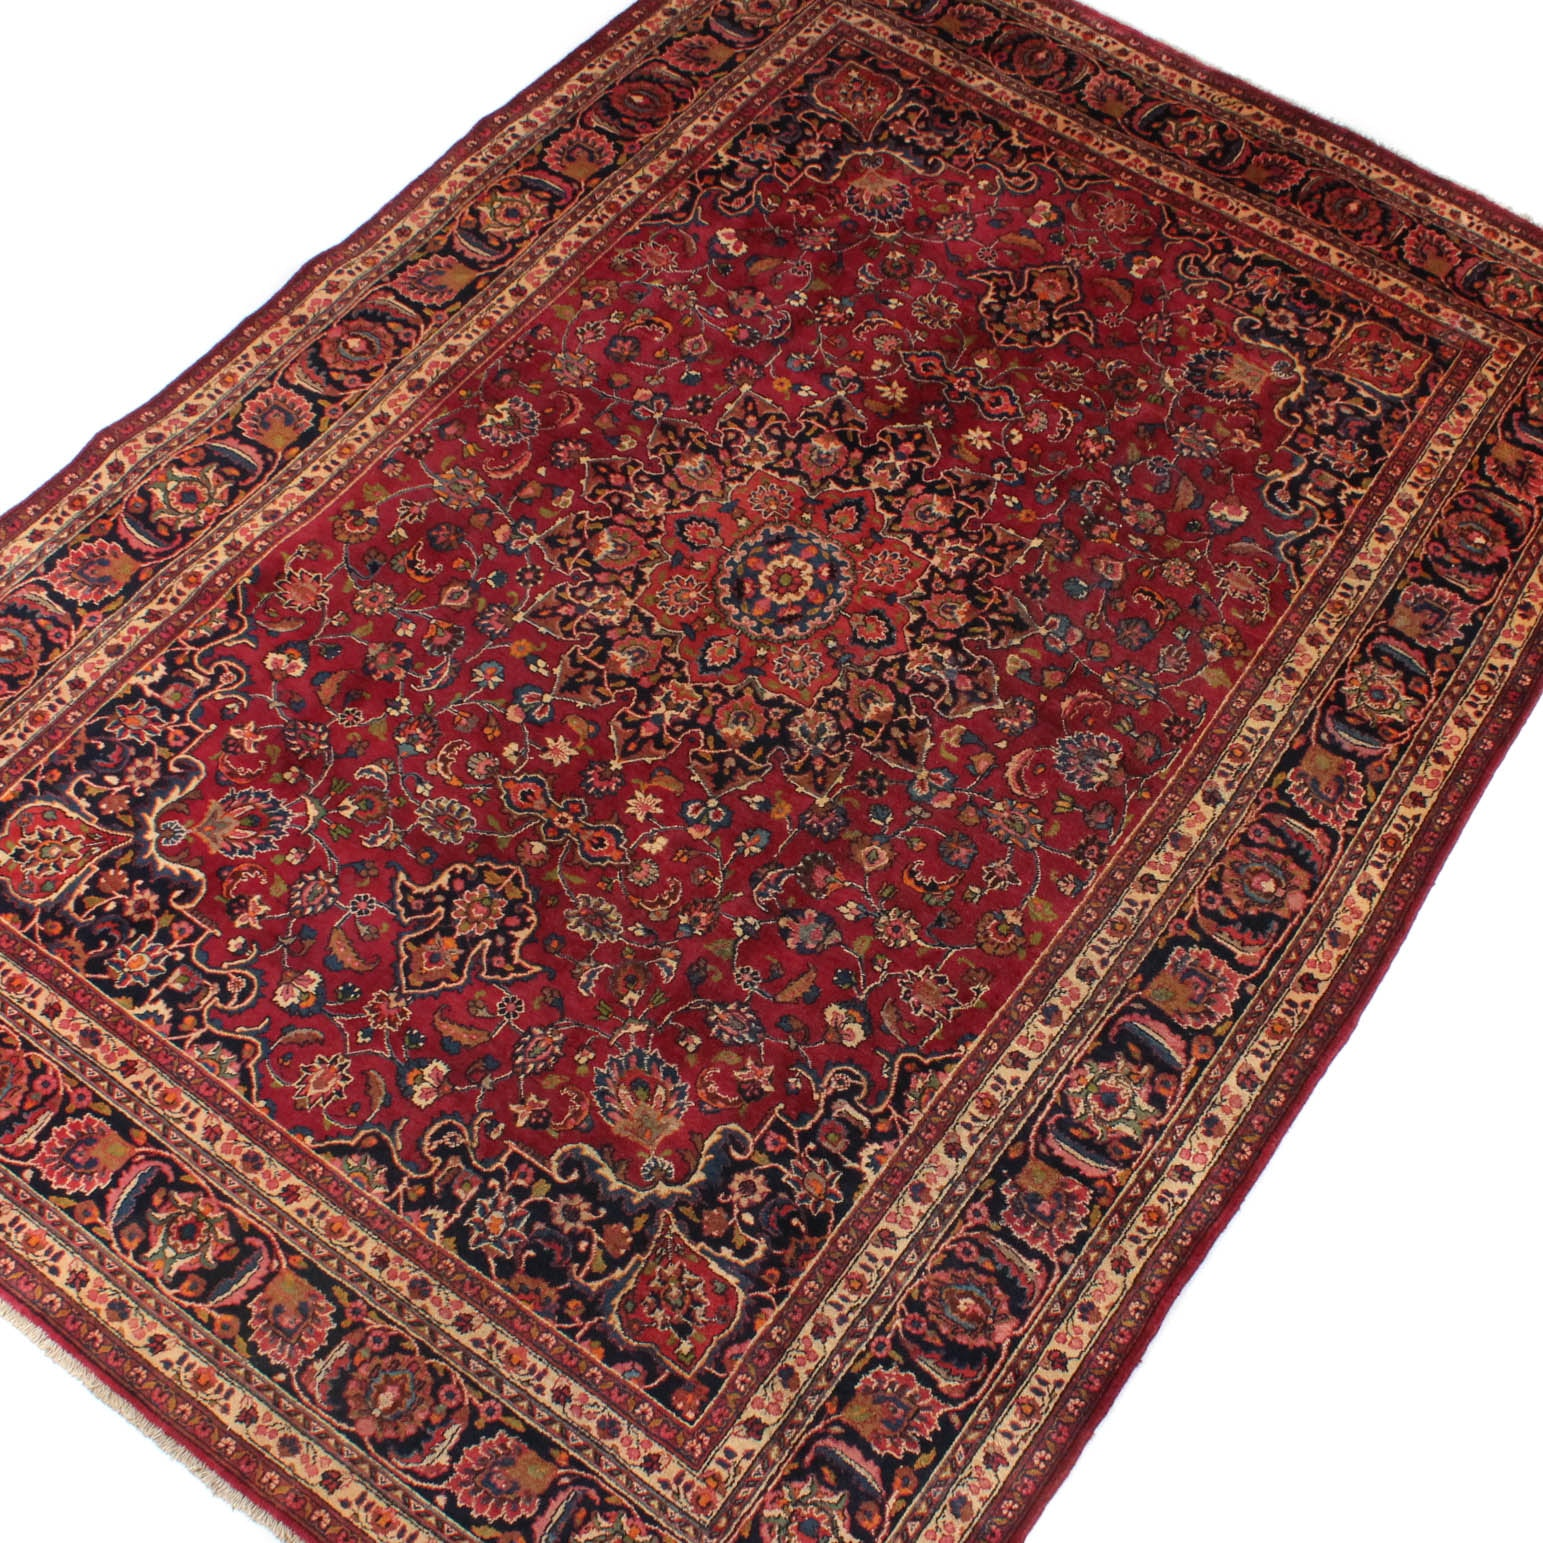 8' x 12' Vintage Karrimi Signed Hand-Knotted Persian Mashad Room Size Rug